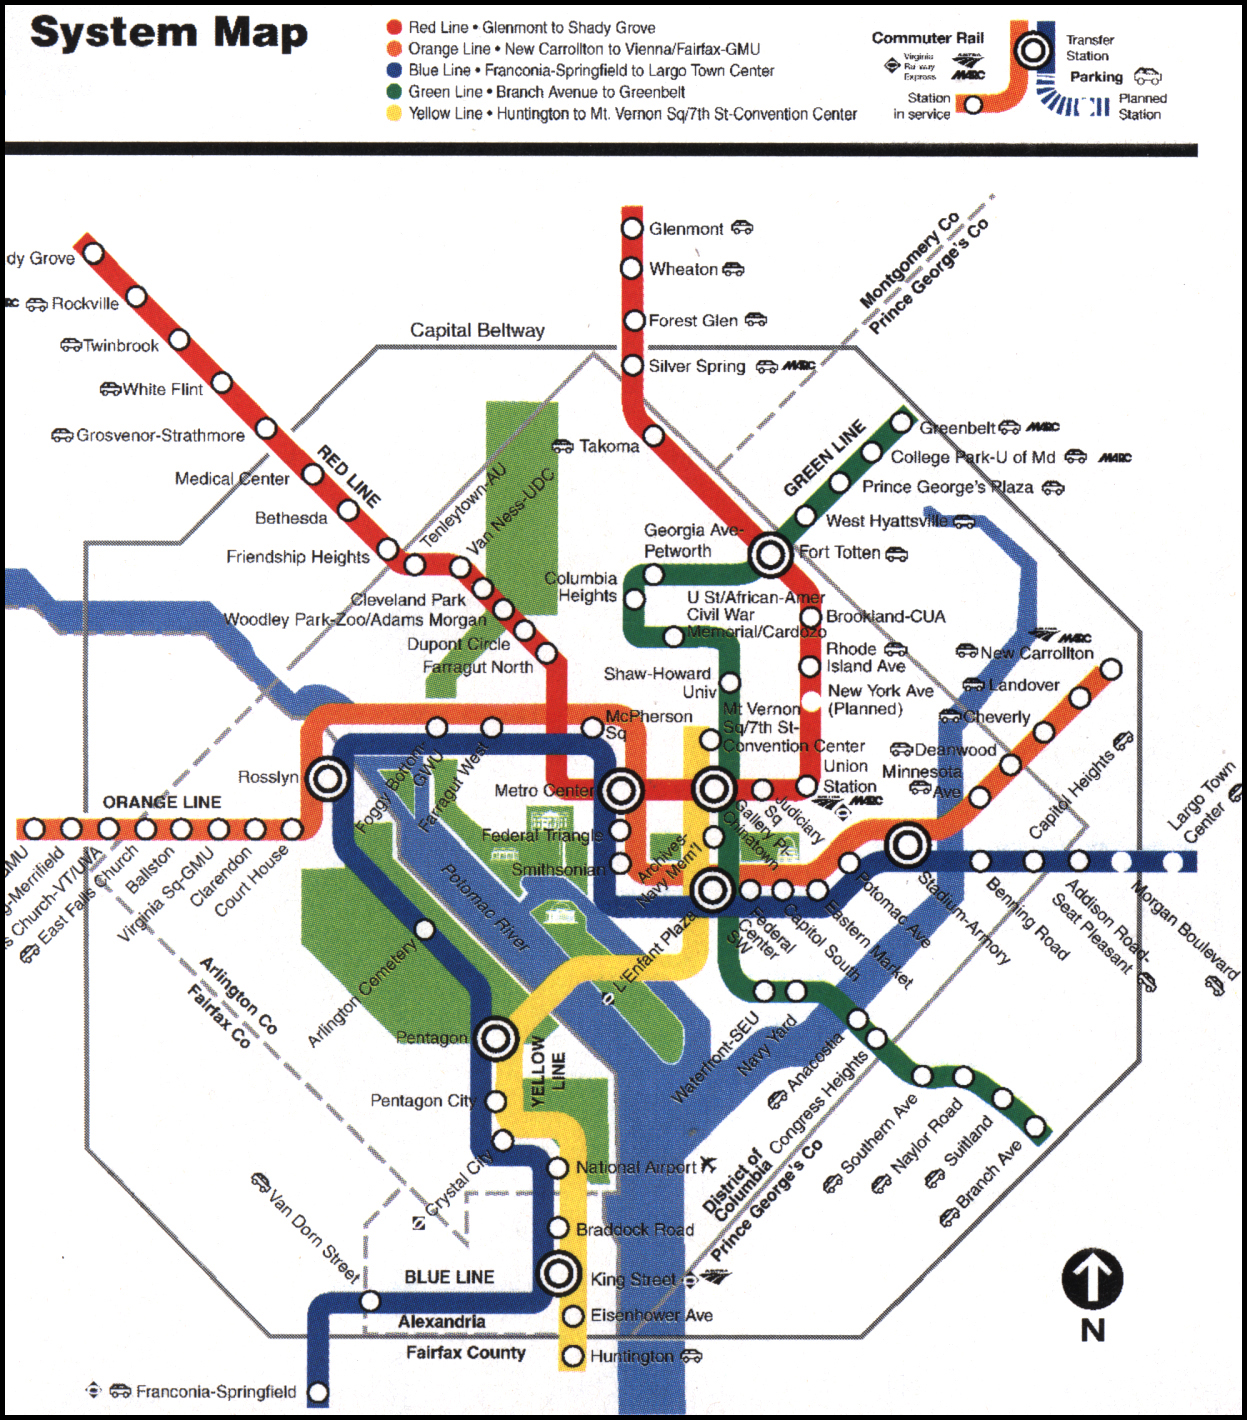 Washington dc Map With Metro Stations dc Metro Map | Maps Plaza